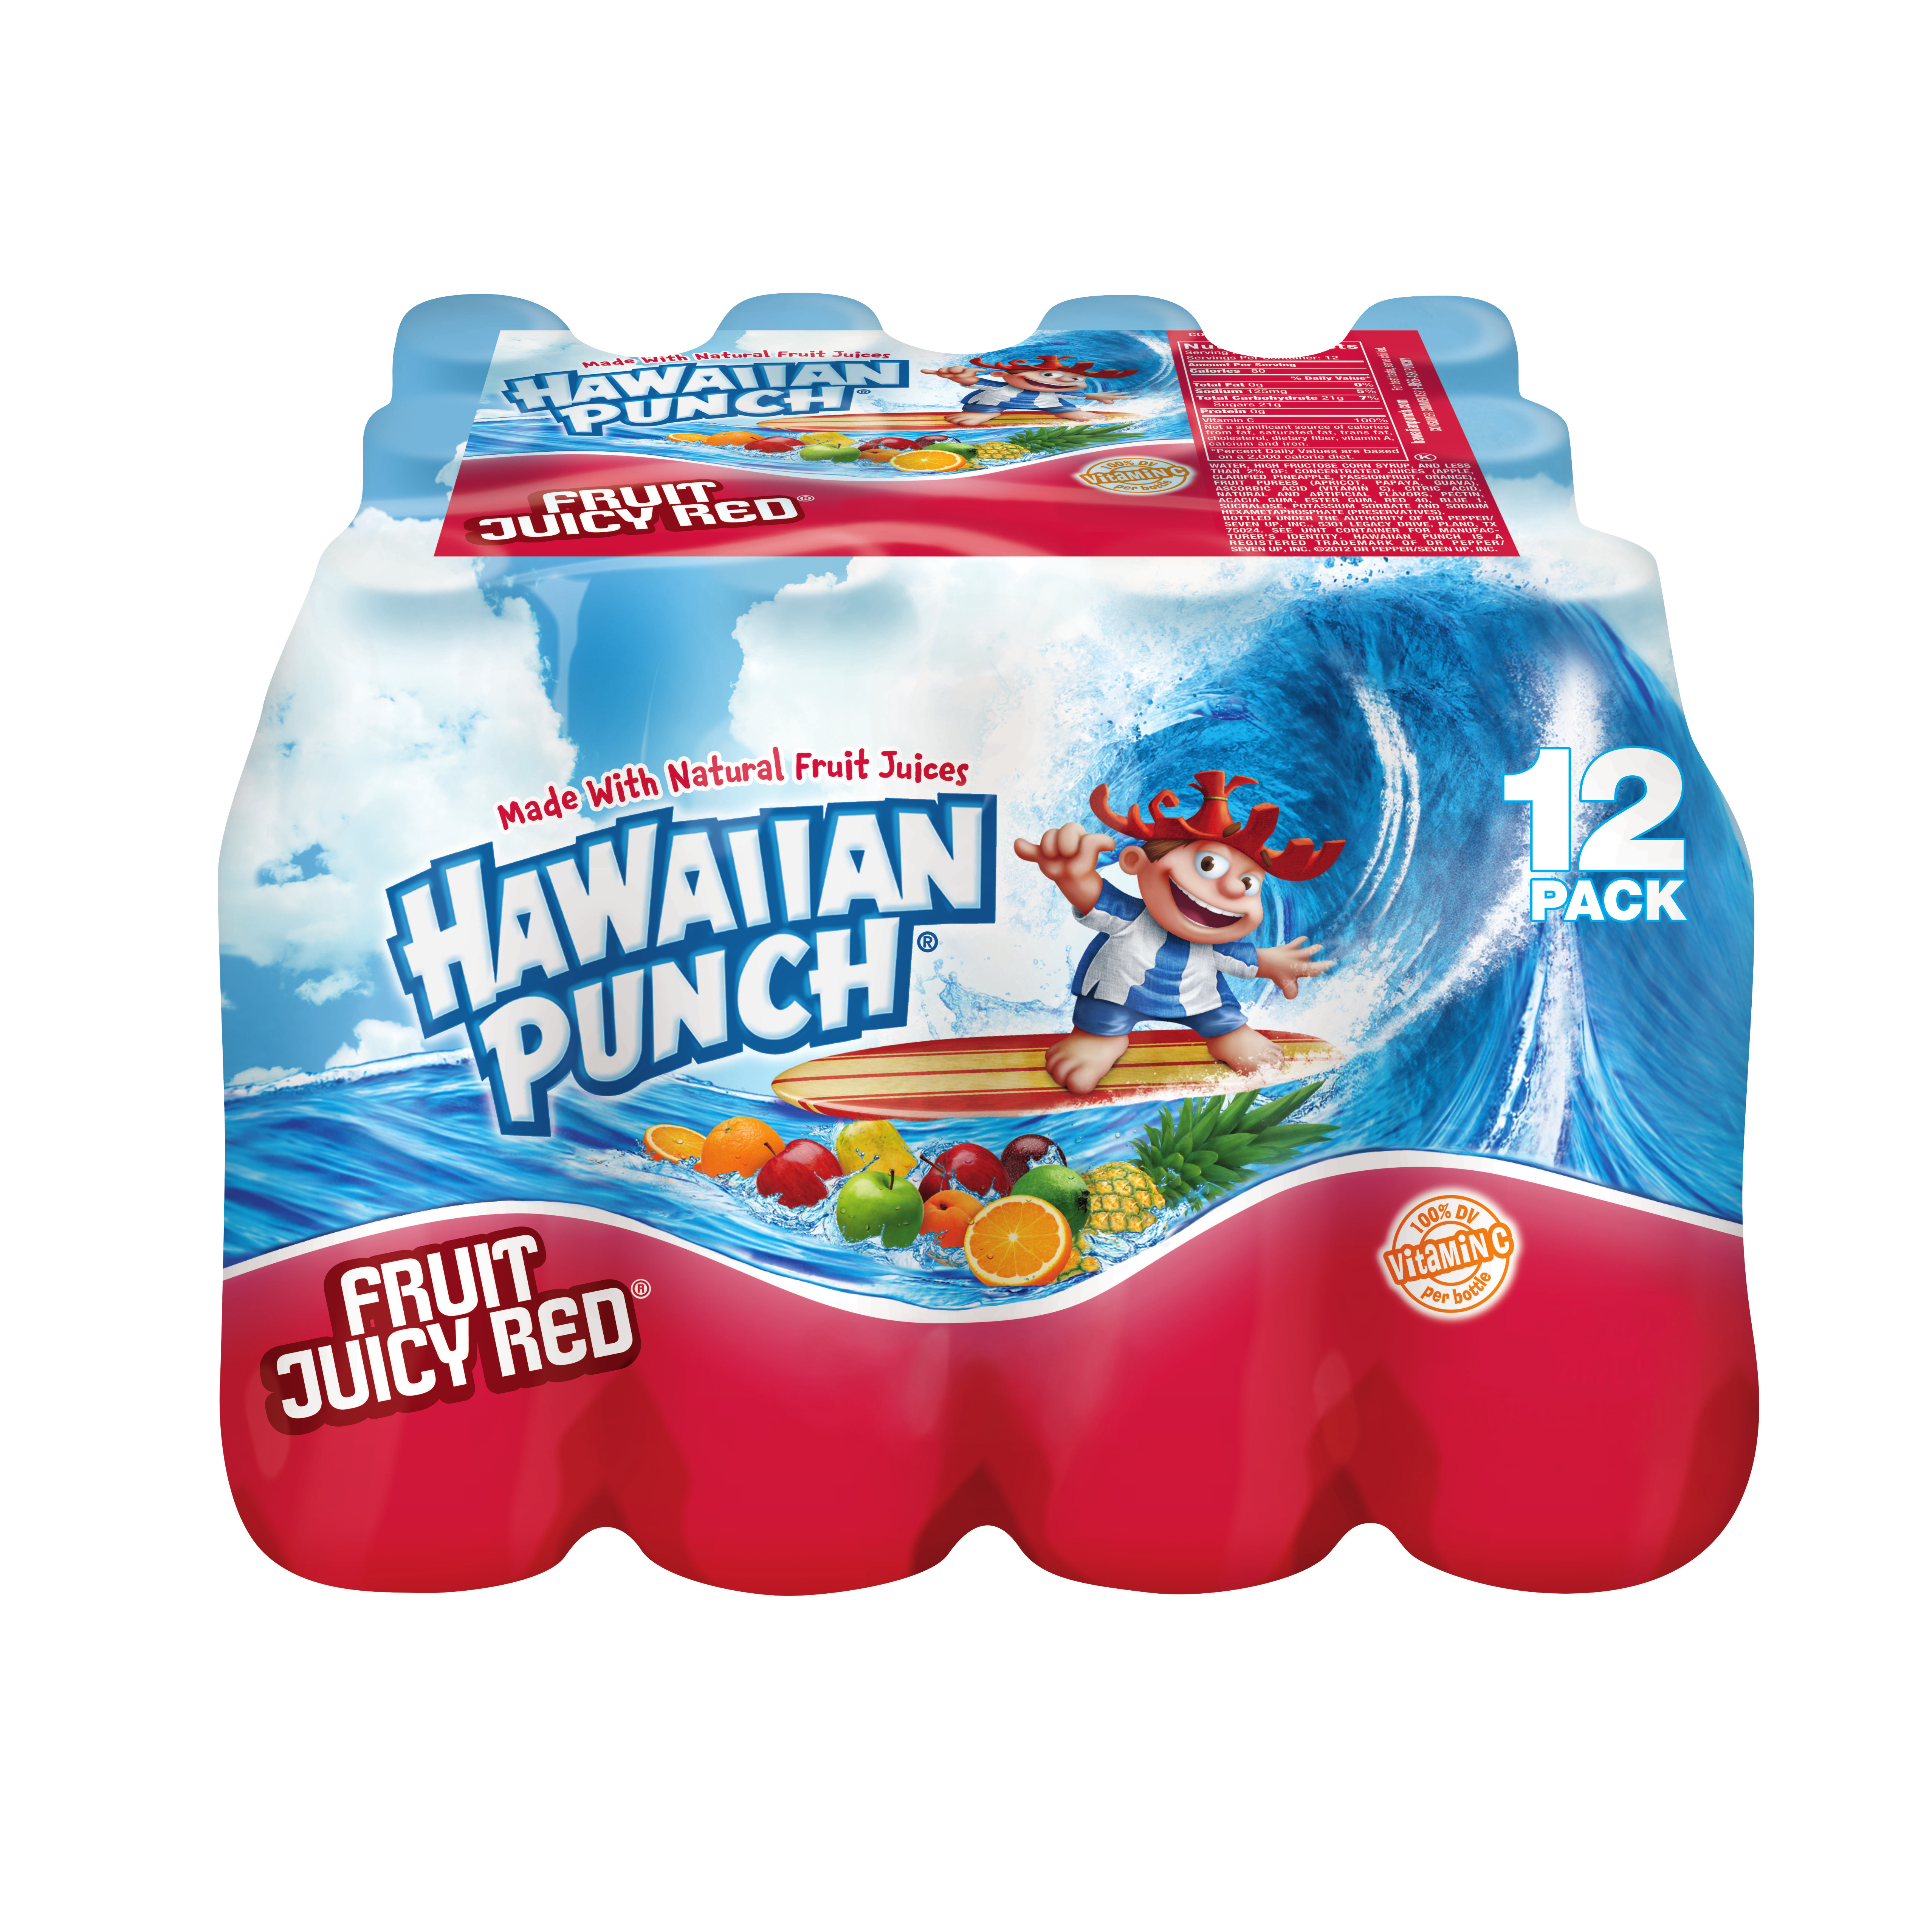 Hawaiian Punch Fruit Juicy Red Drink, 10 Fl. Oz., 12 Count